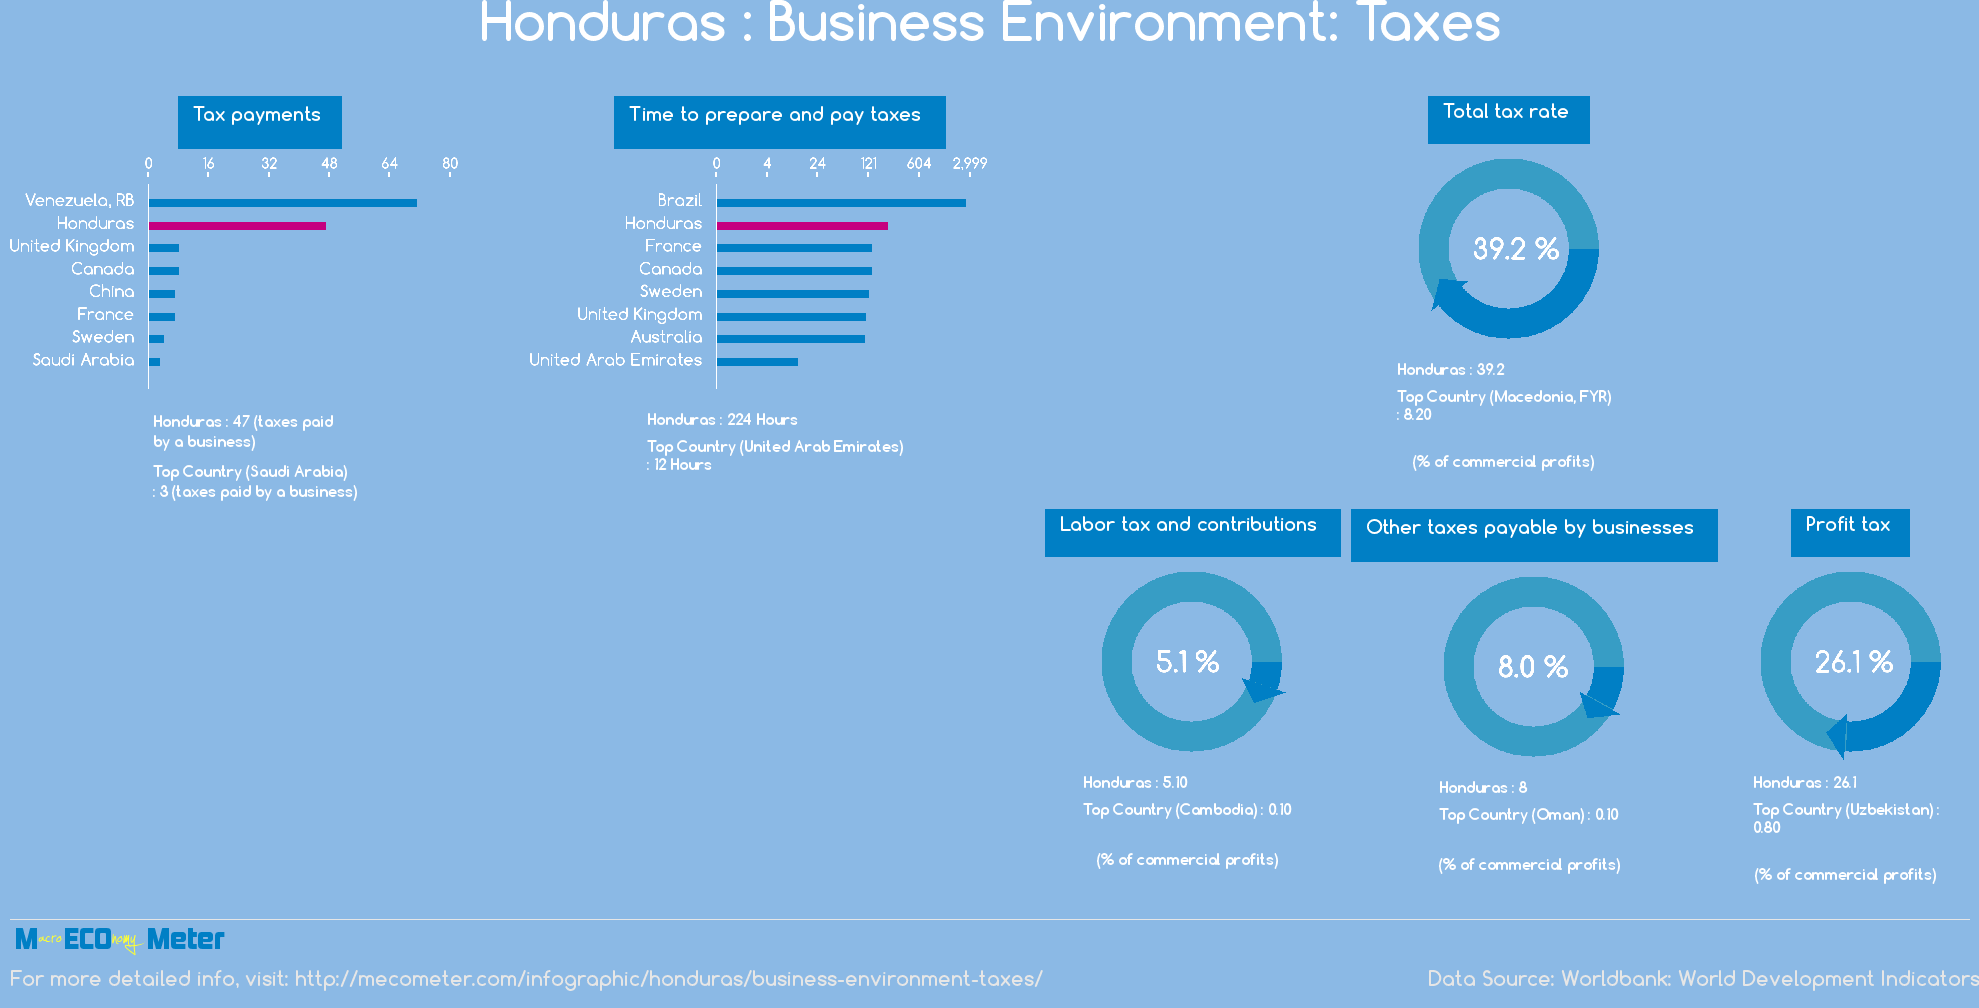 Honduras : Business Environment: Taxes